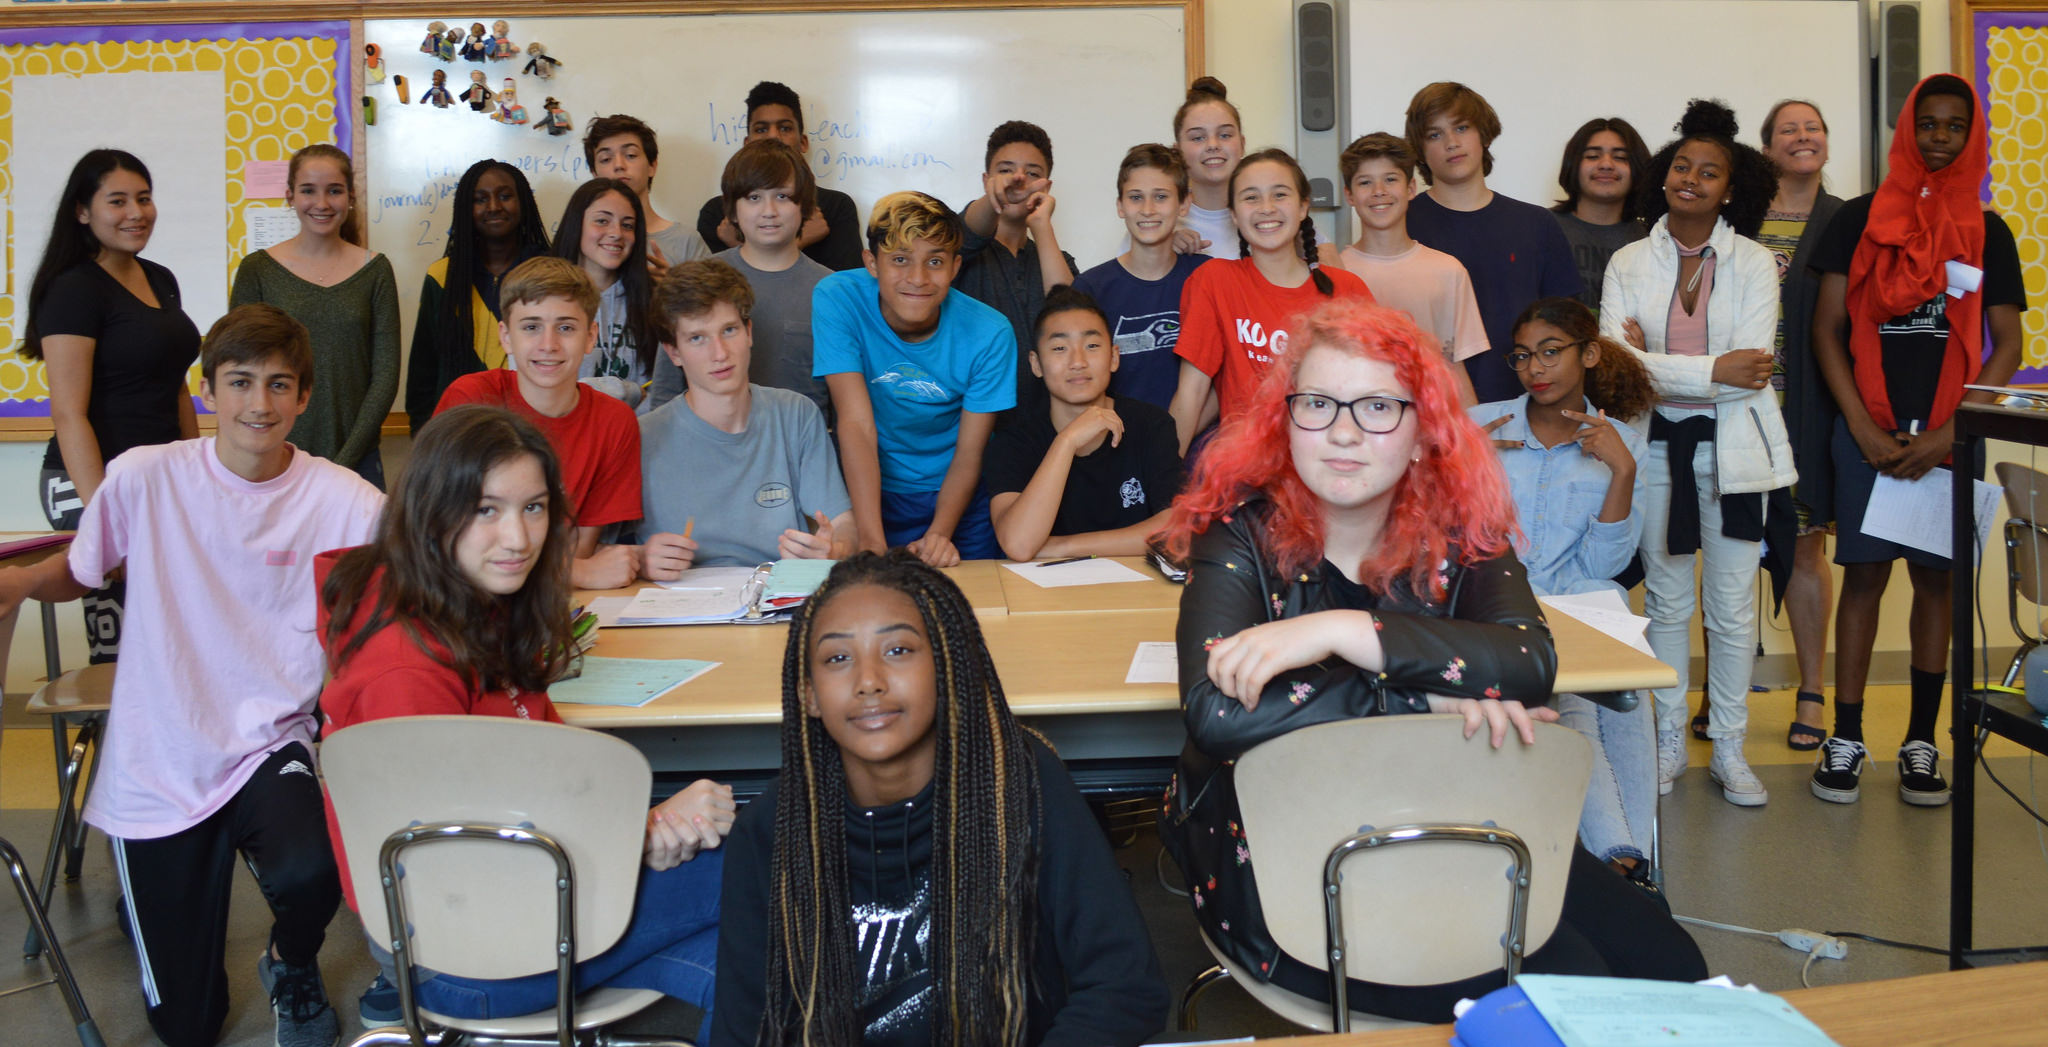 Deal Middle School Class | Zinn Education Project